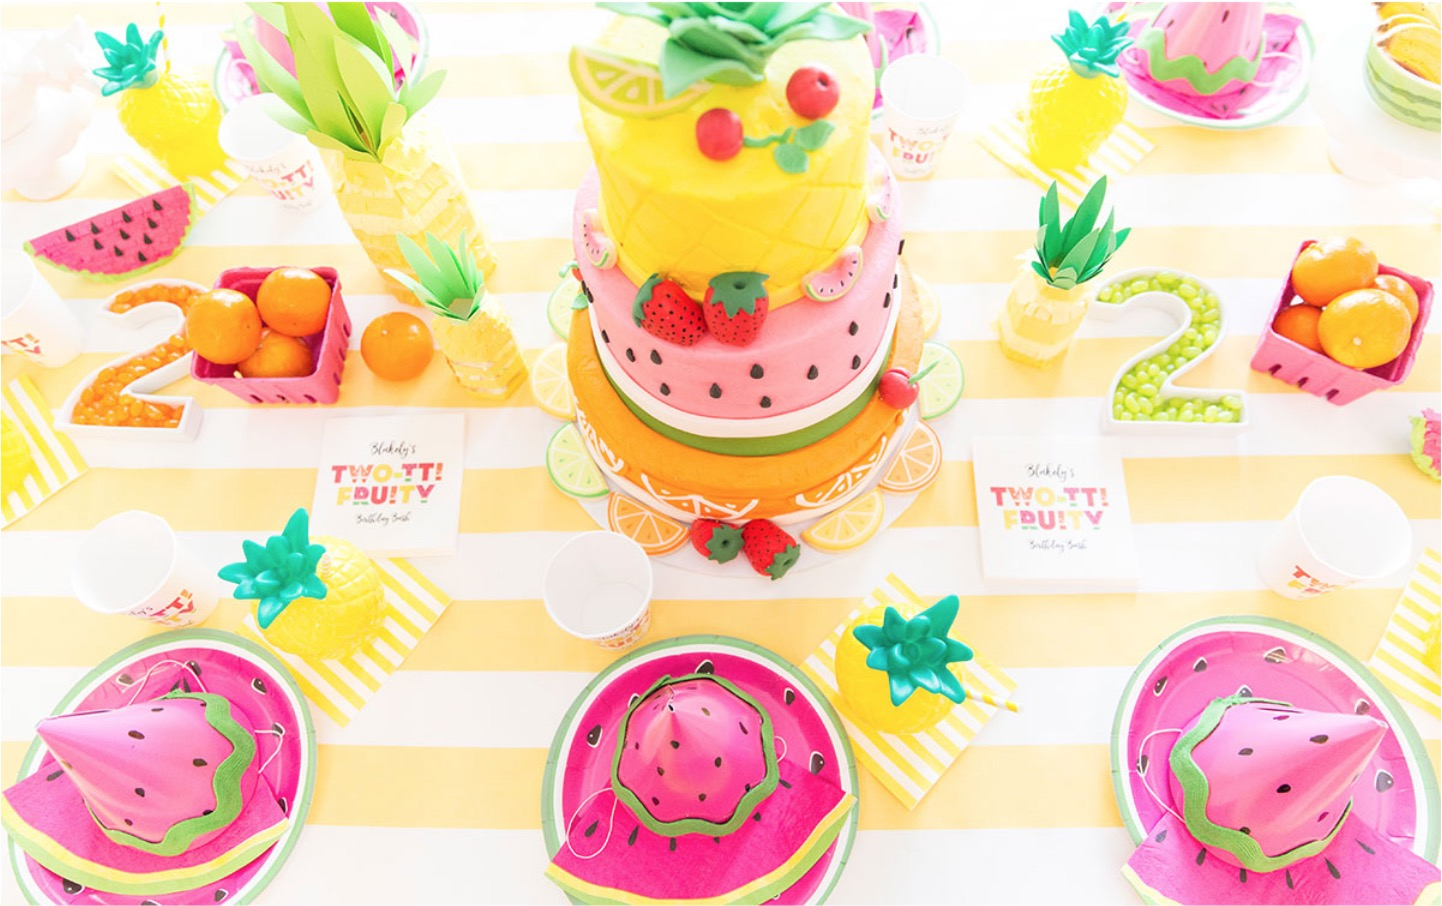 birthday party themes ; birthday-party-themes-kids-1-two-tti-fruity-watermelon-pineappl